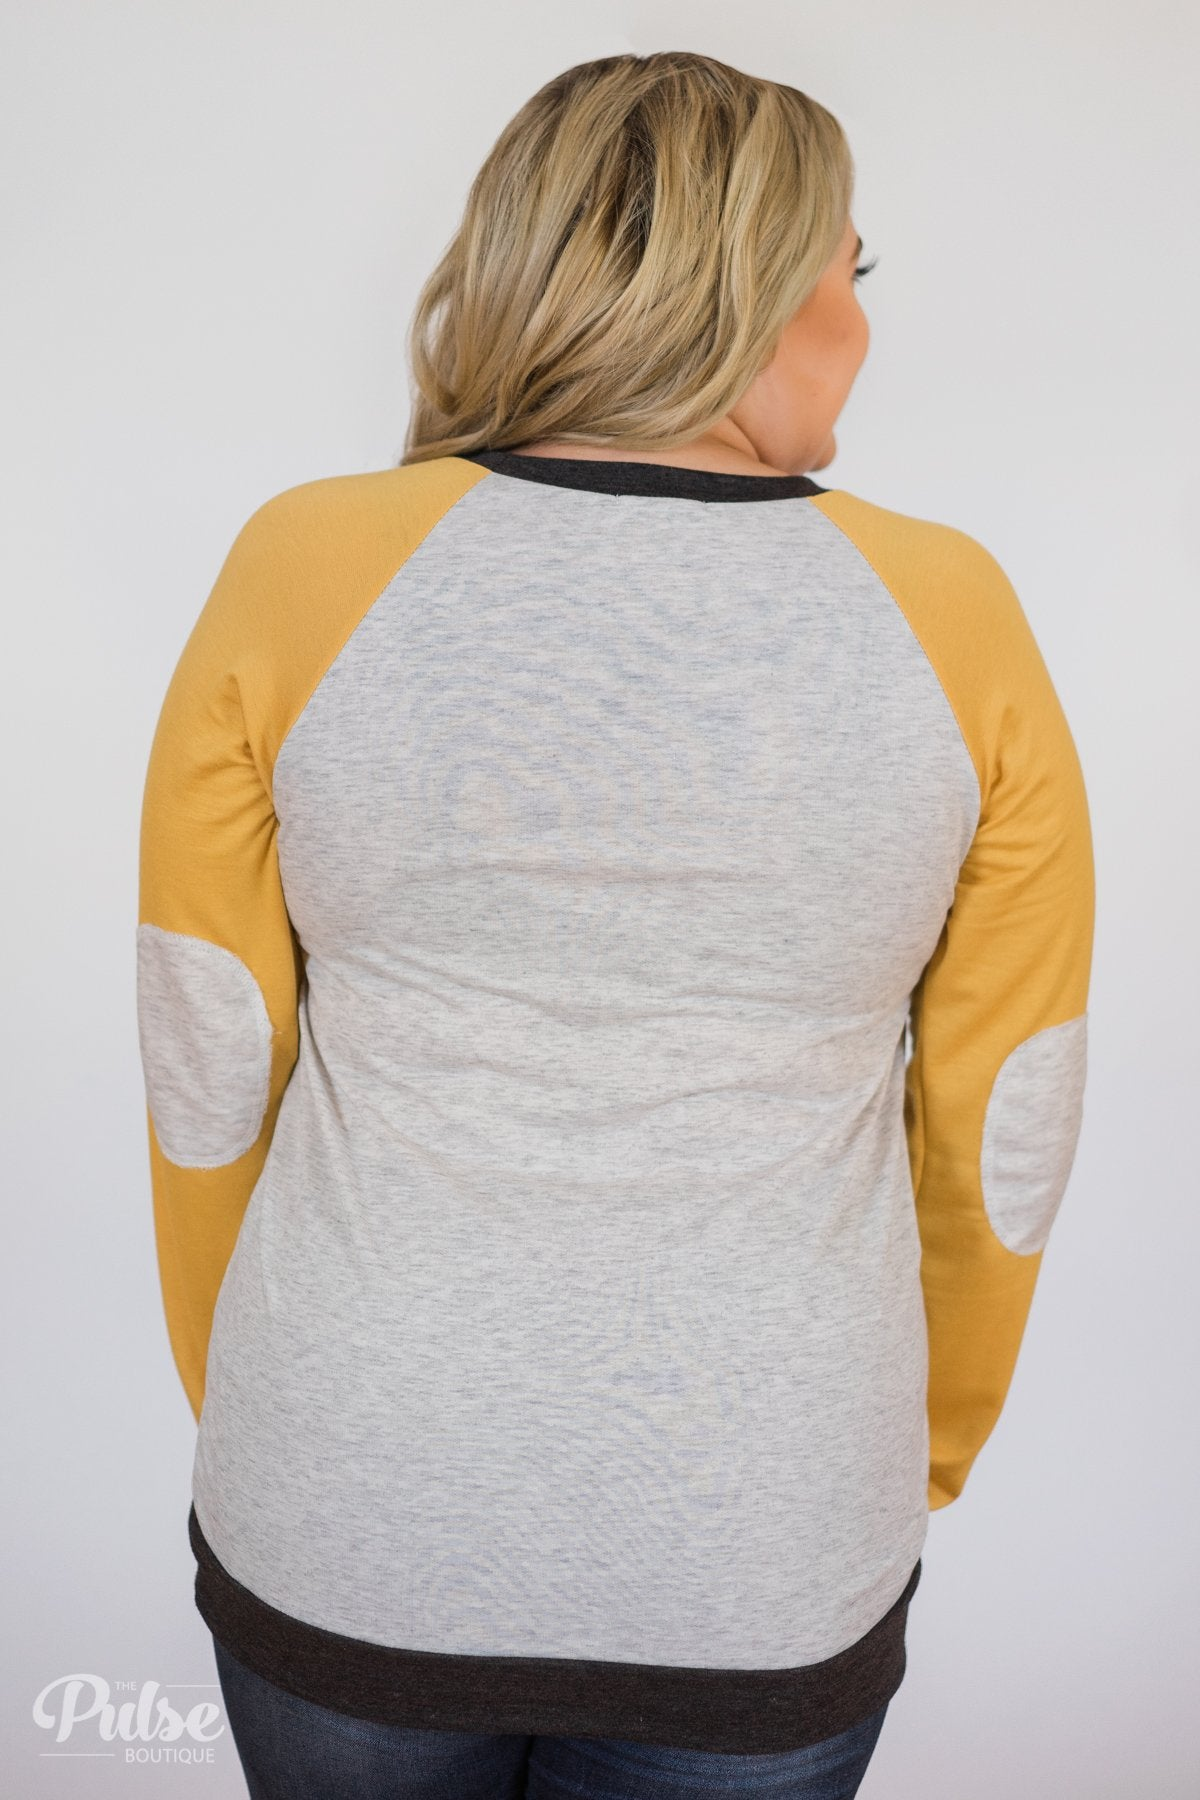 Elbow Patch Color Block Pullover Top- Yellow, Charcoal, Grey